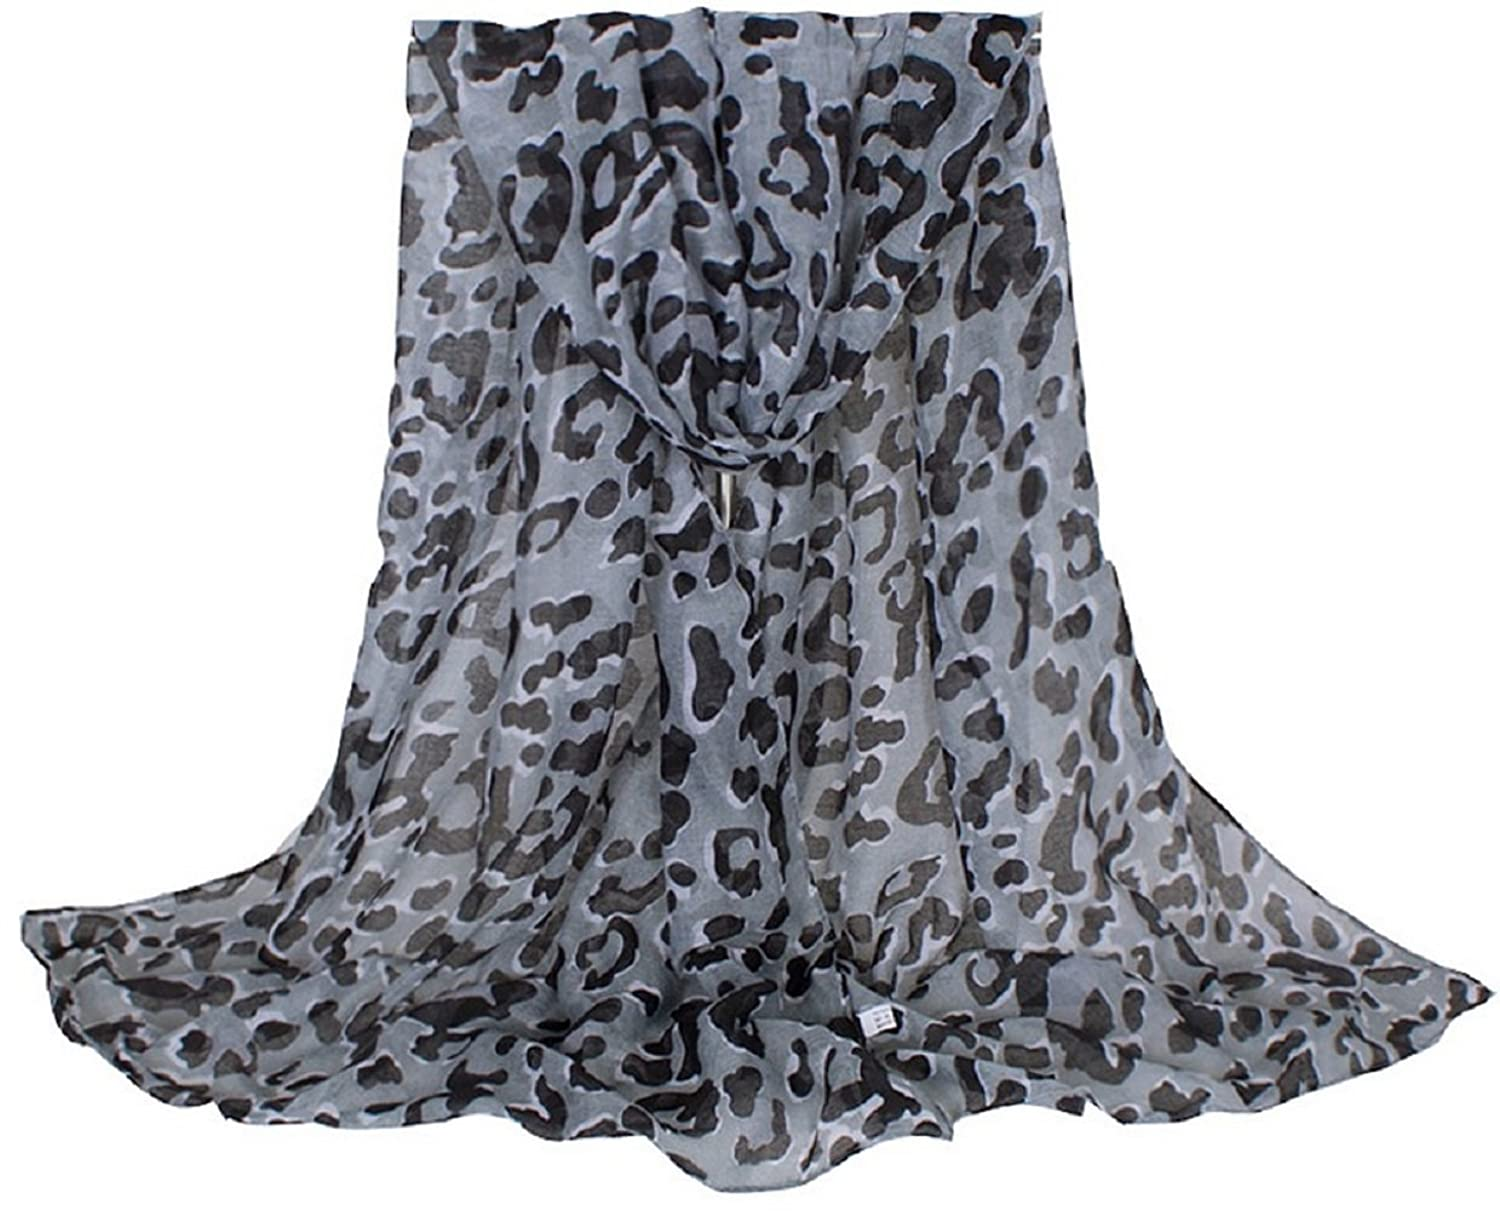 Bettyhome Fashion Girls Sexy Leopard Print Voile Women's Large Beach Scarf Shawl Lightweight